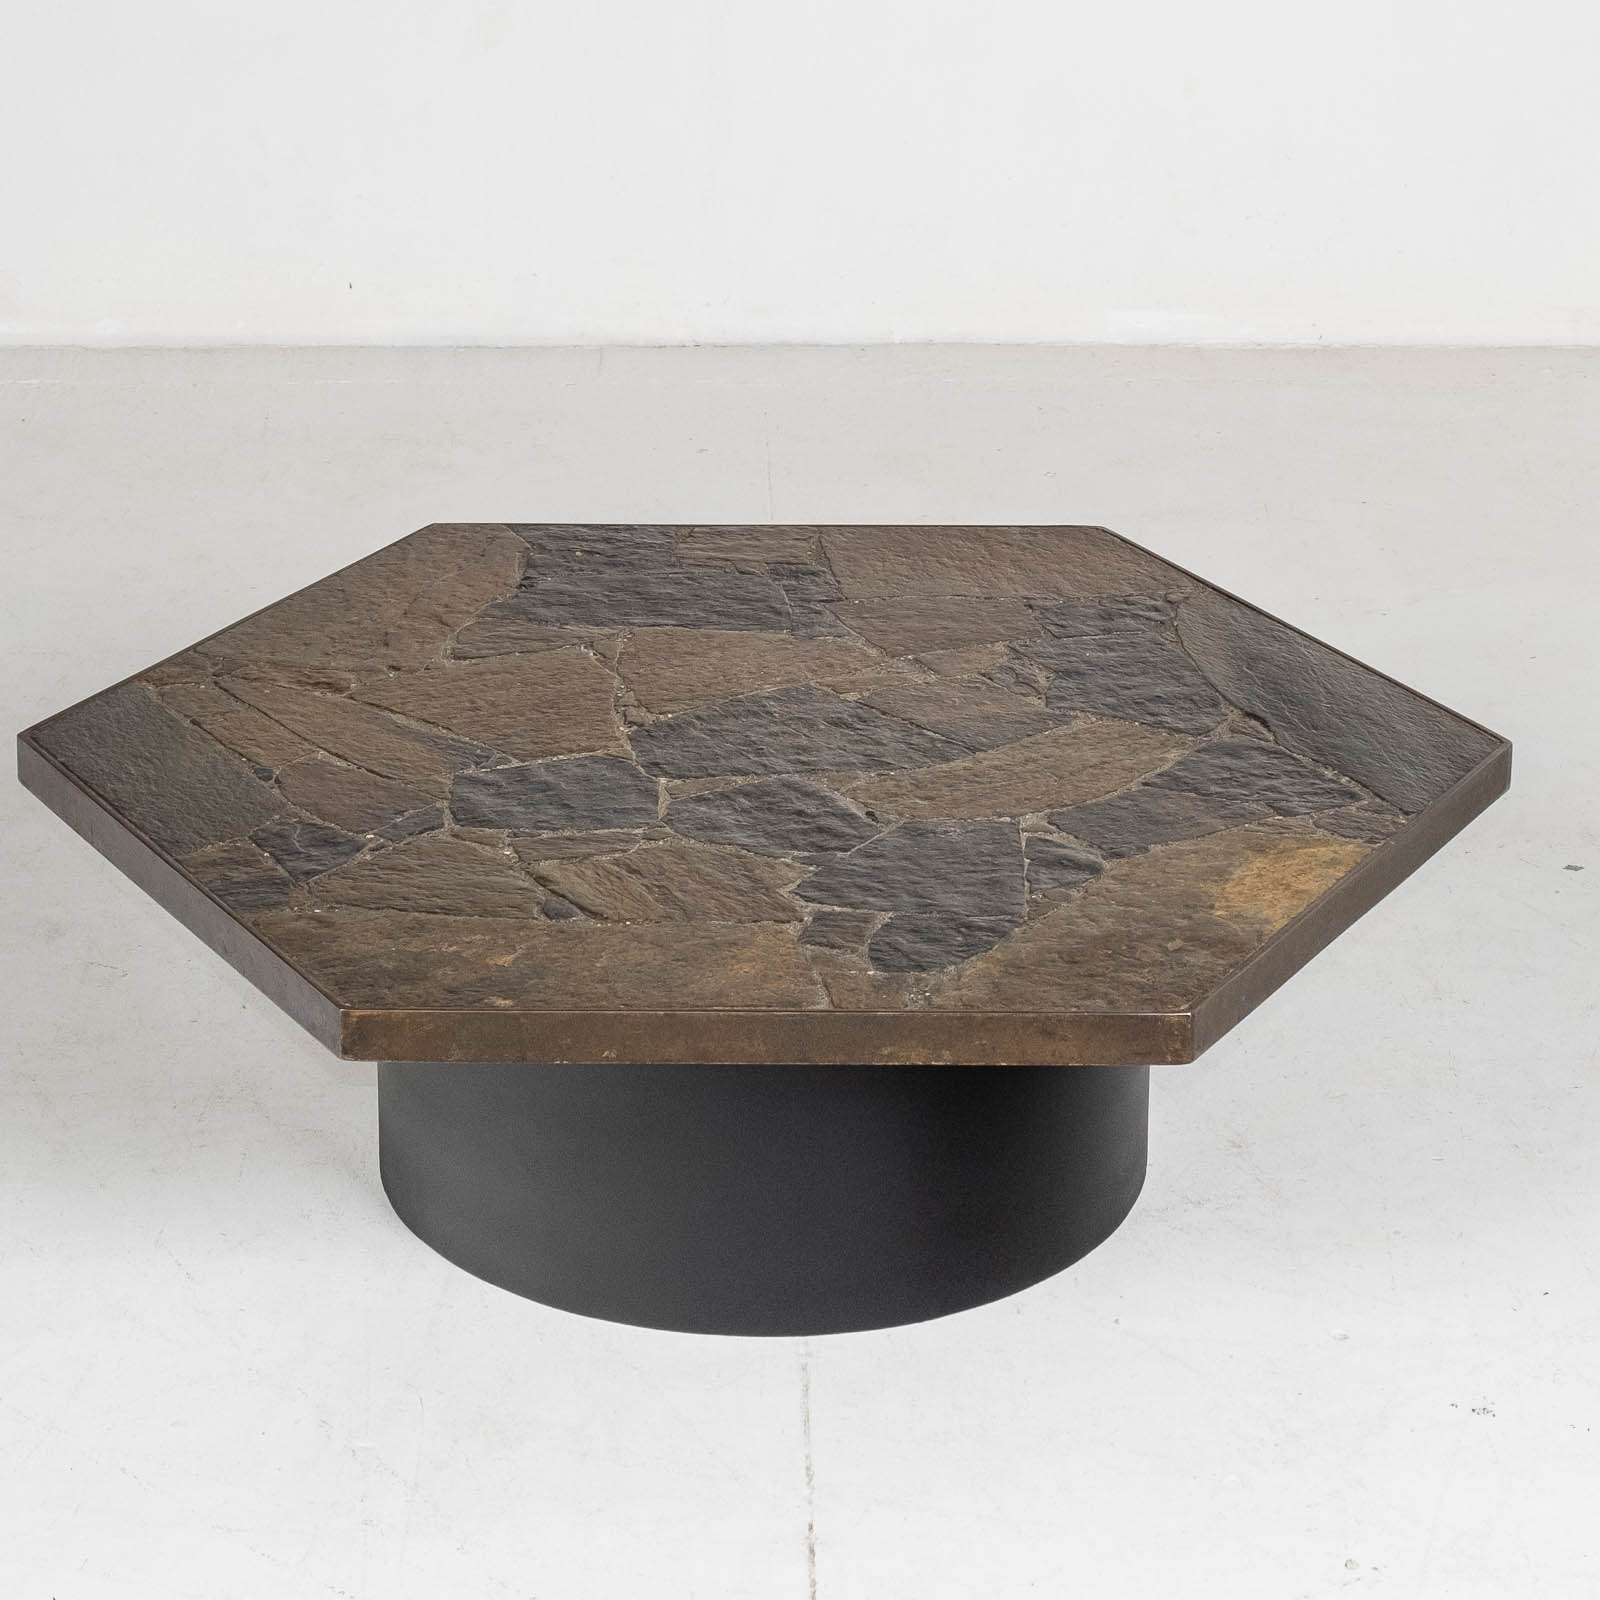 Hexagonal Coffee Table In The Style Of Paul Kingma With Stone Top And Metal Edge, 1970s, The Netherlands 00002